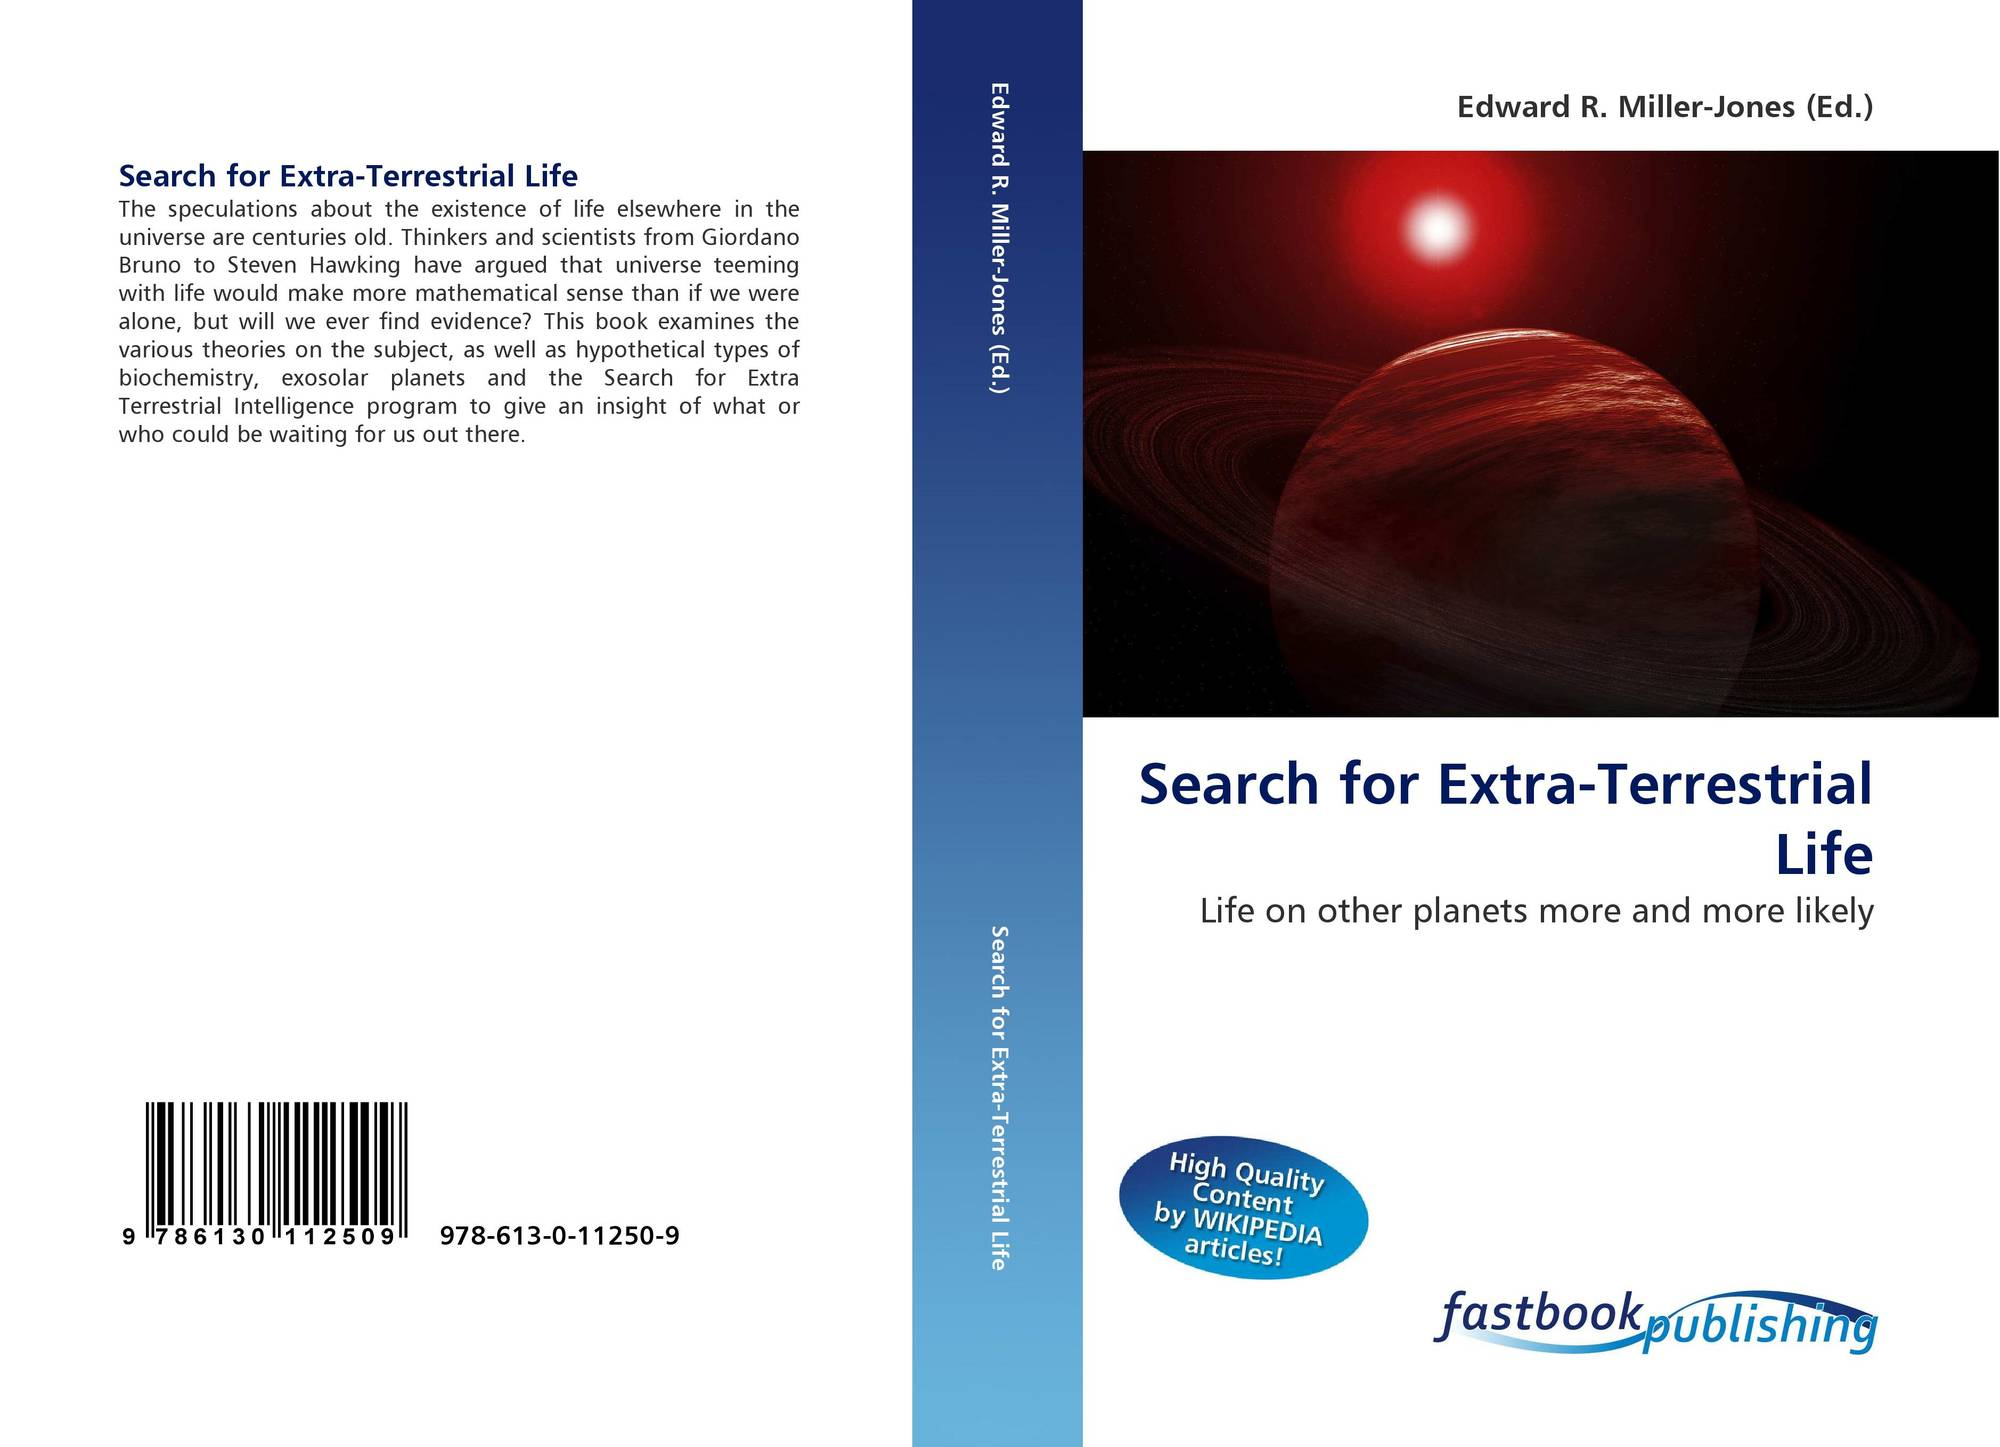 seti a programme designed for searching for extraterrestrial life A personal view on the nervousness and research papers welcome to tea pause are you excited to know all about teas and drinking the best teas in the world.